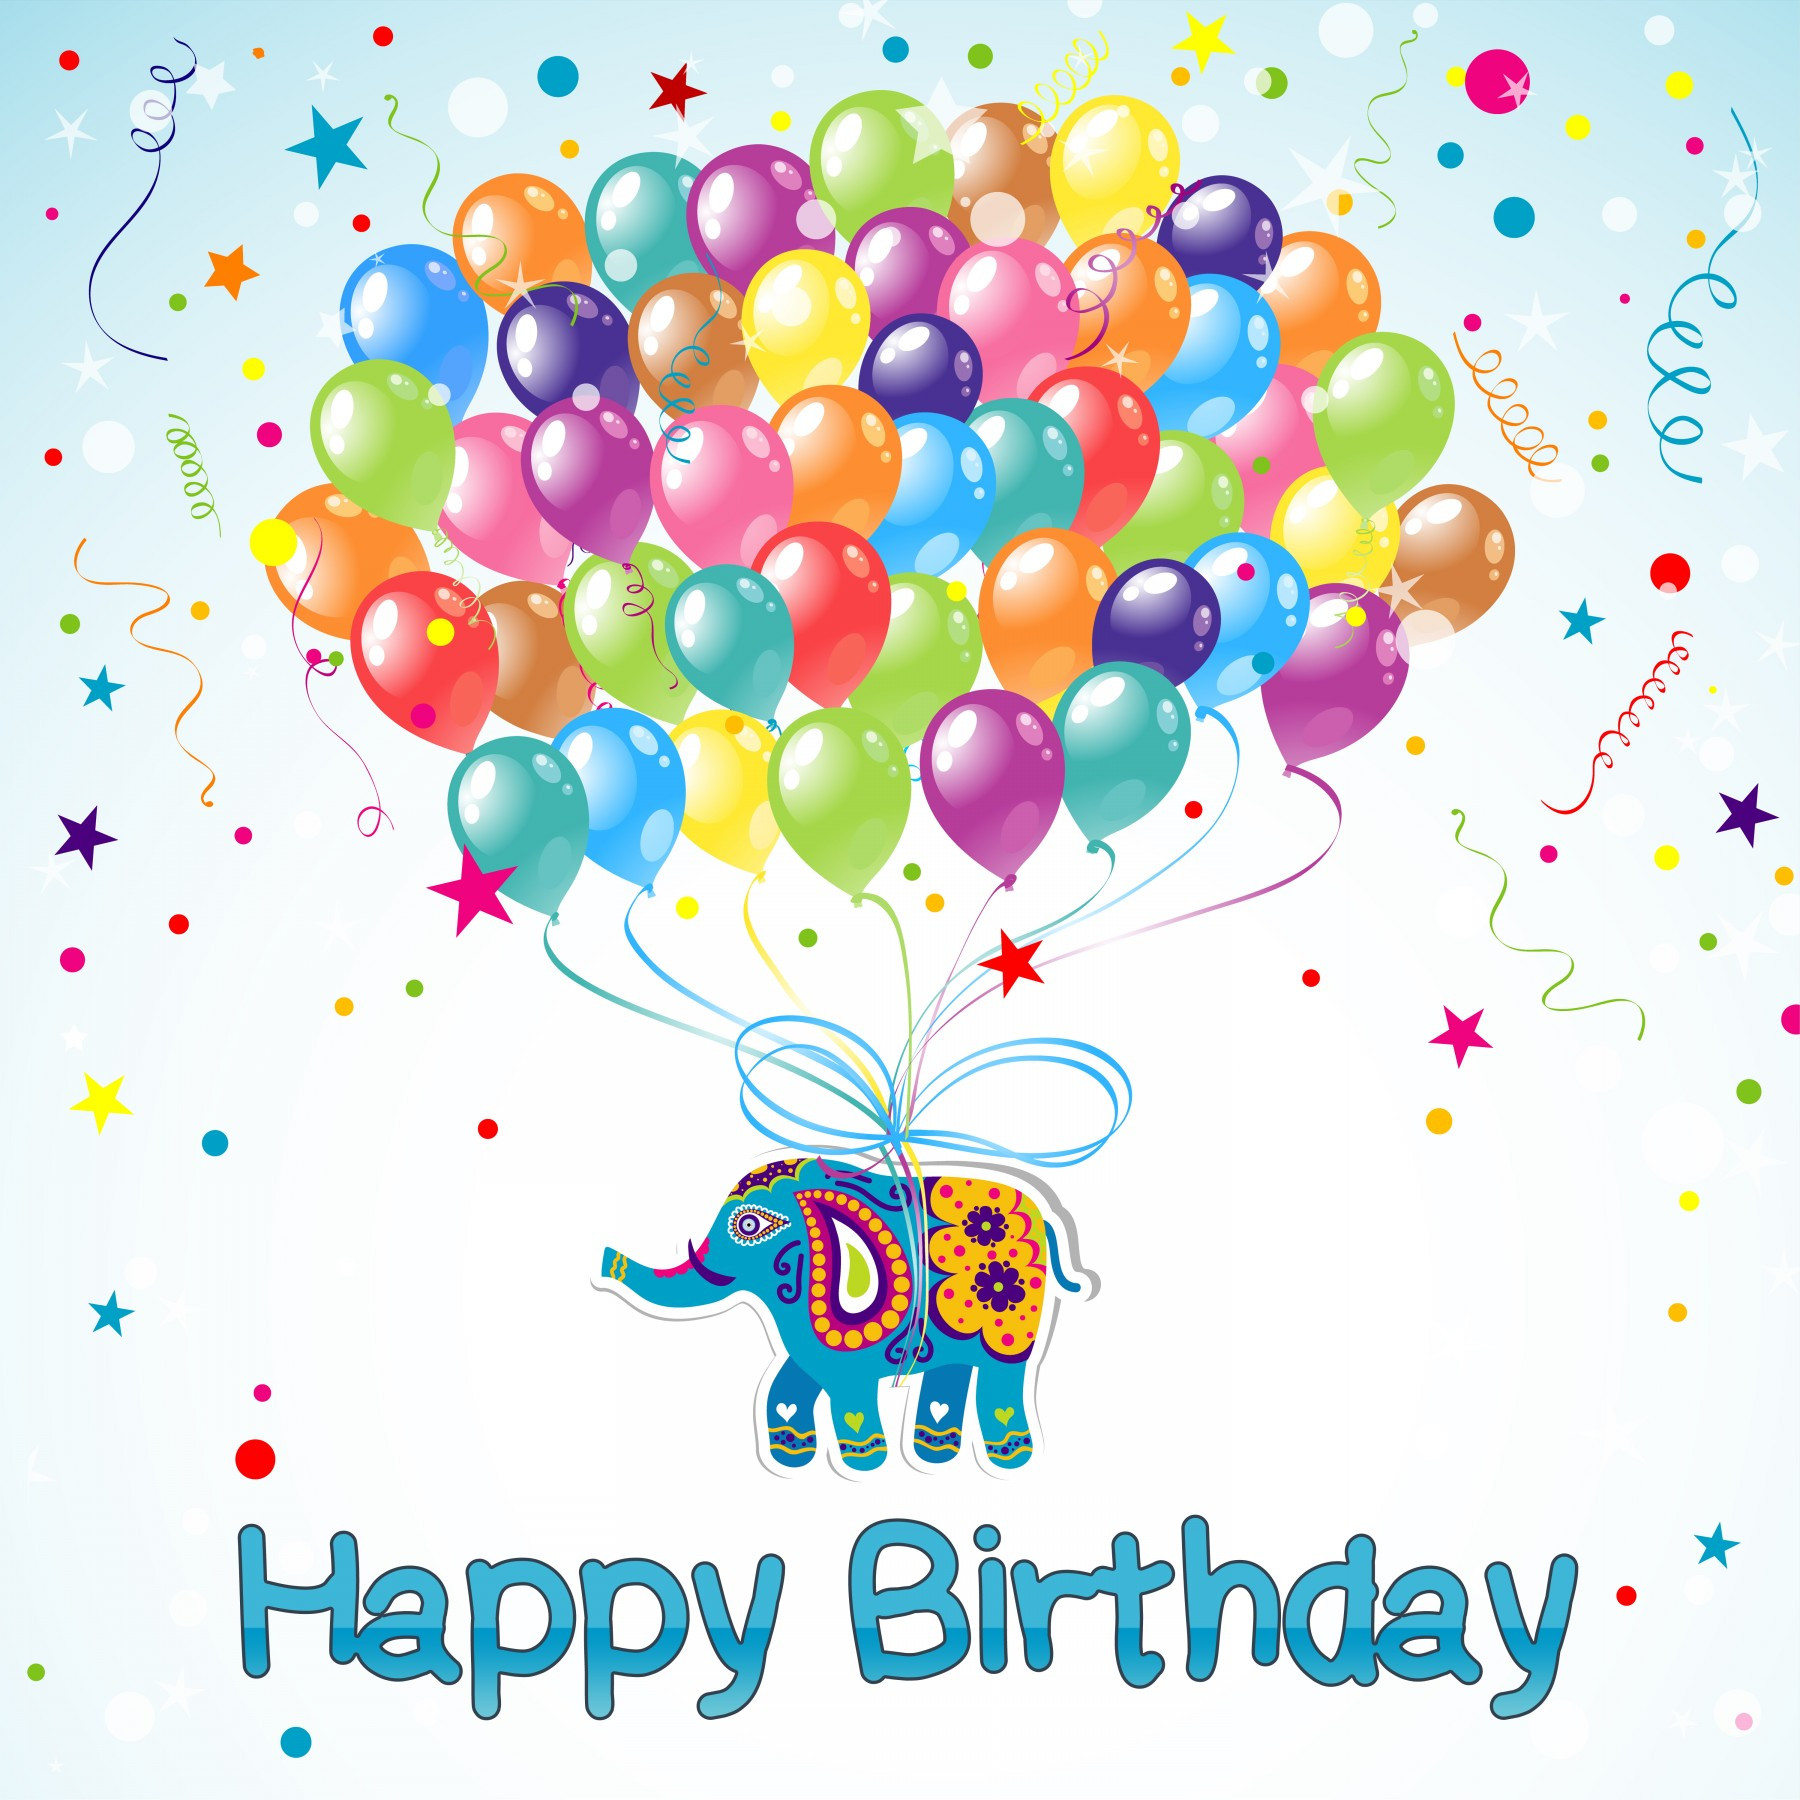 Best ideas about Thoughtful Birthday Wishes . Save or Pin Thoughtful and Amazing Birthday Quotes to Send to Your Now.